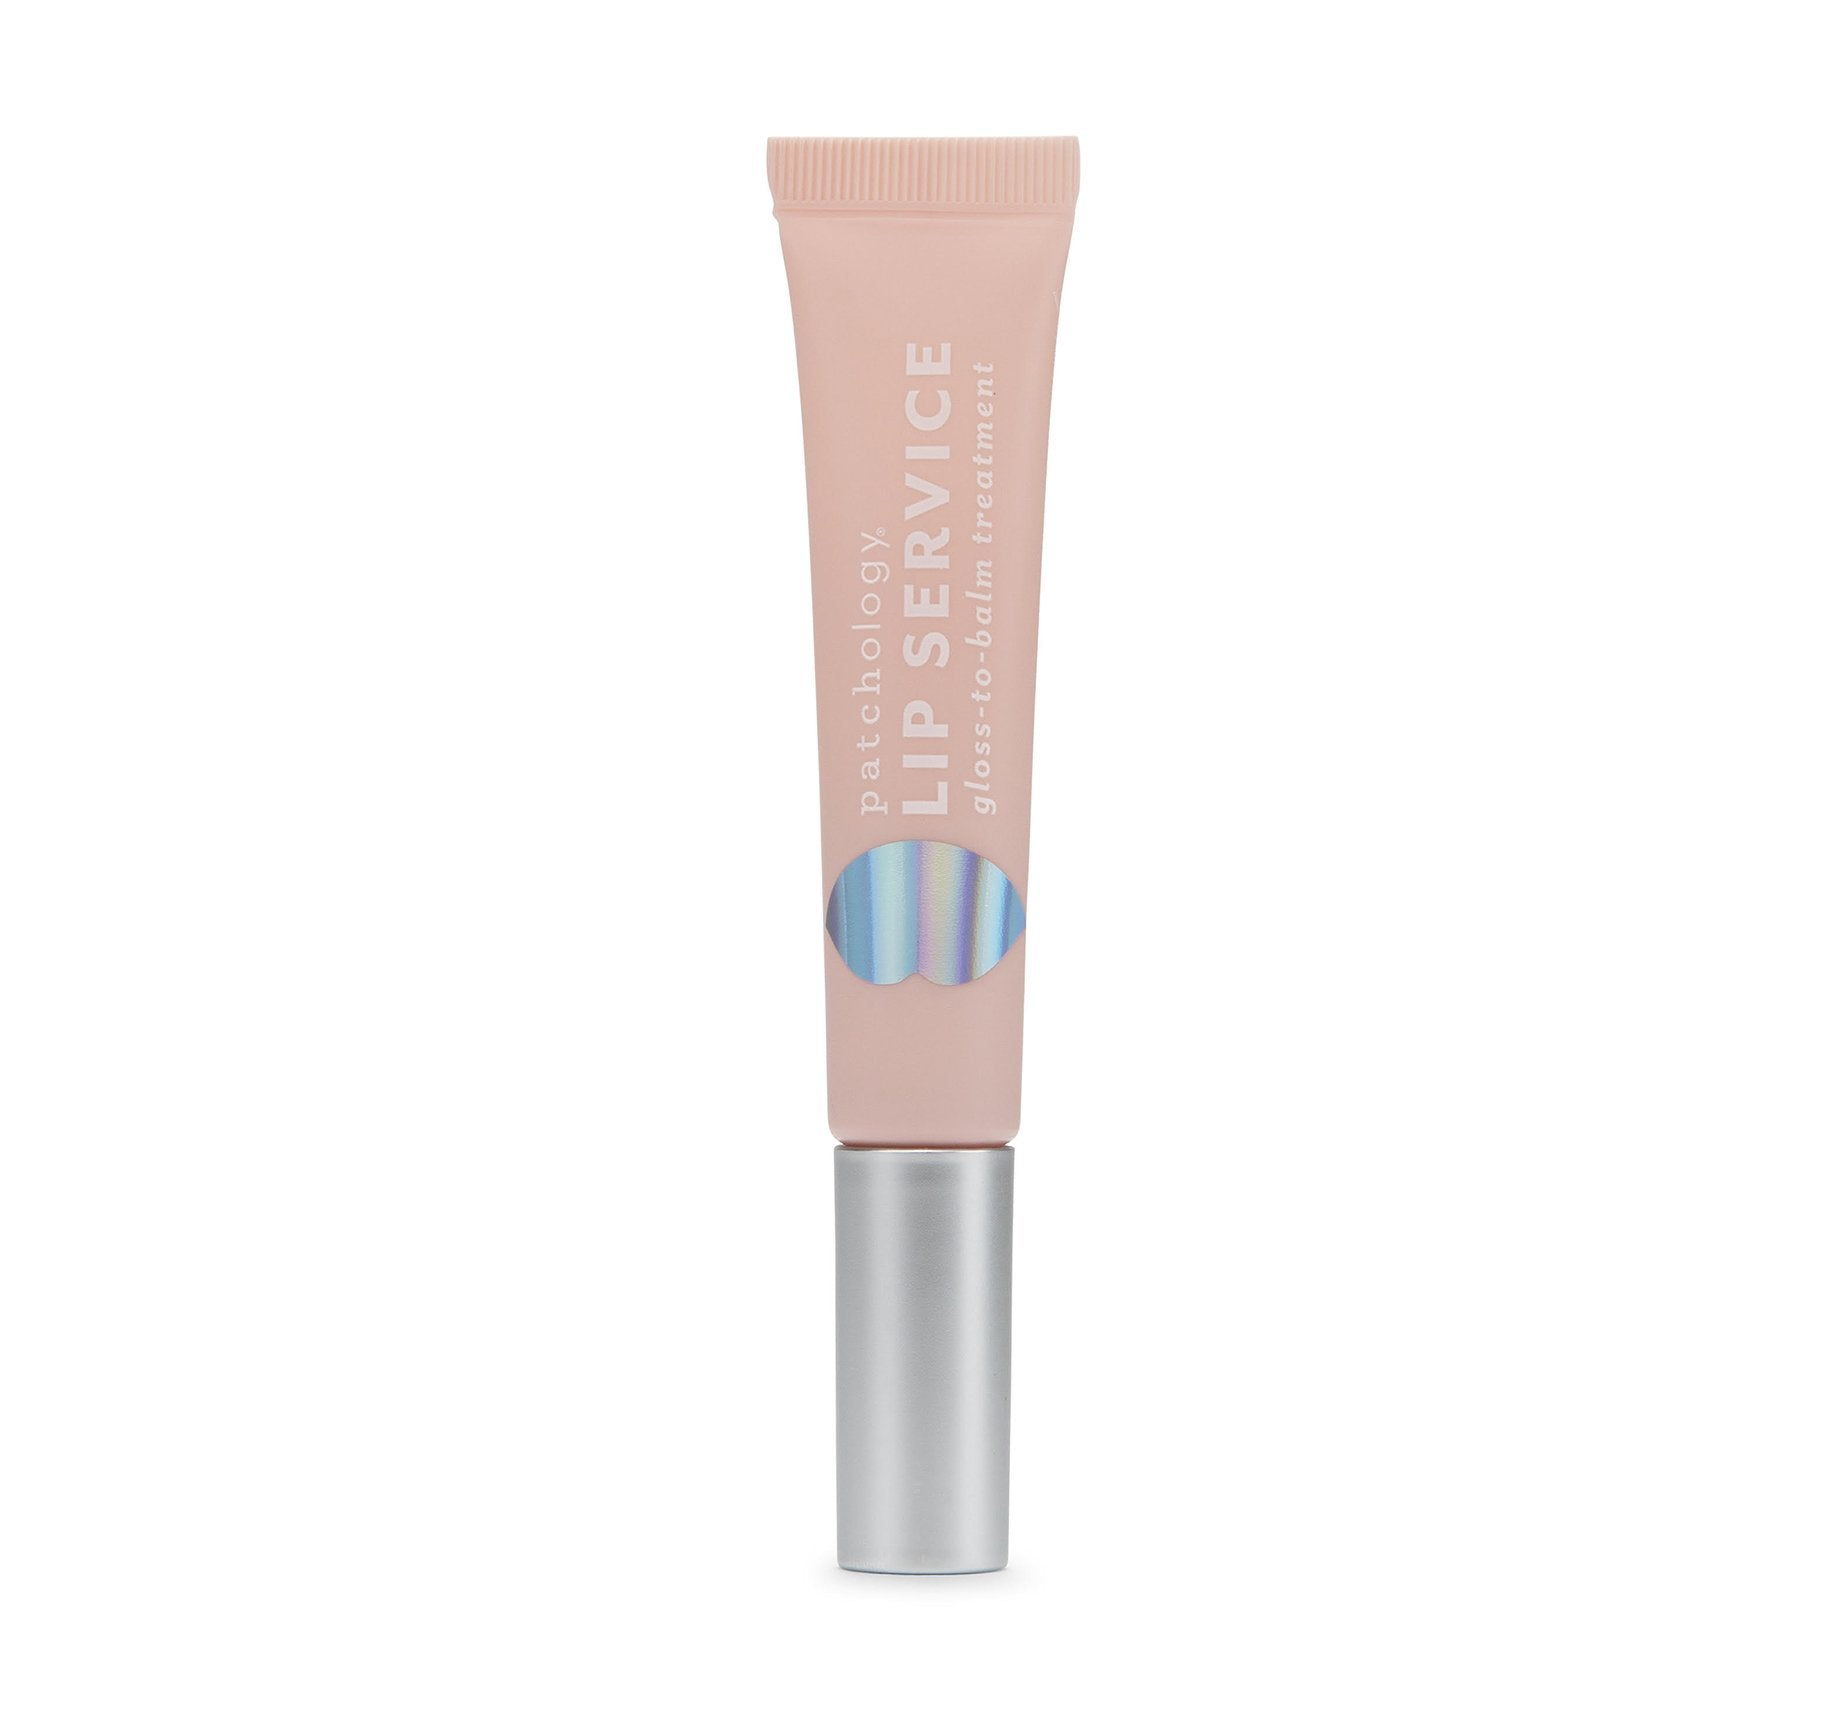 LIP SERVICE GLOSS-TO-BALM TREATMENT